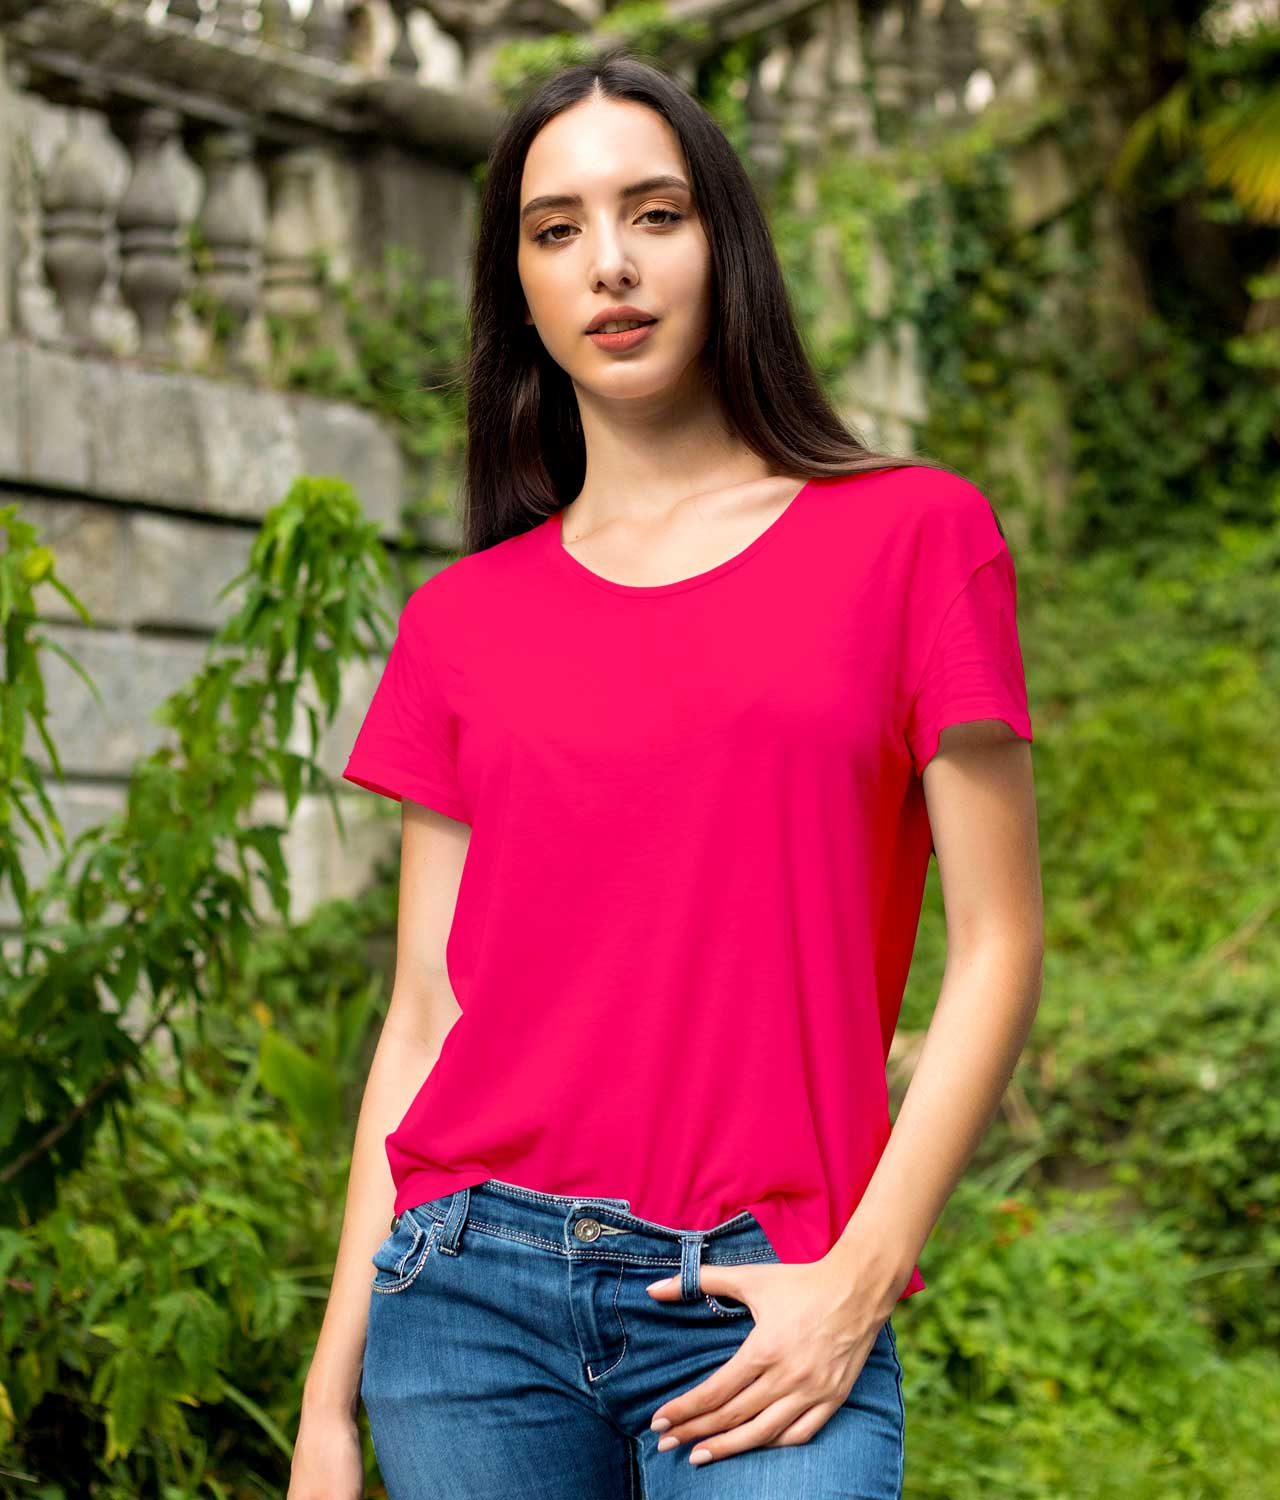 Buy Low Price Offer on T shirts for Women On RagaFab